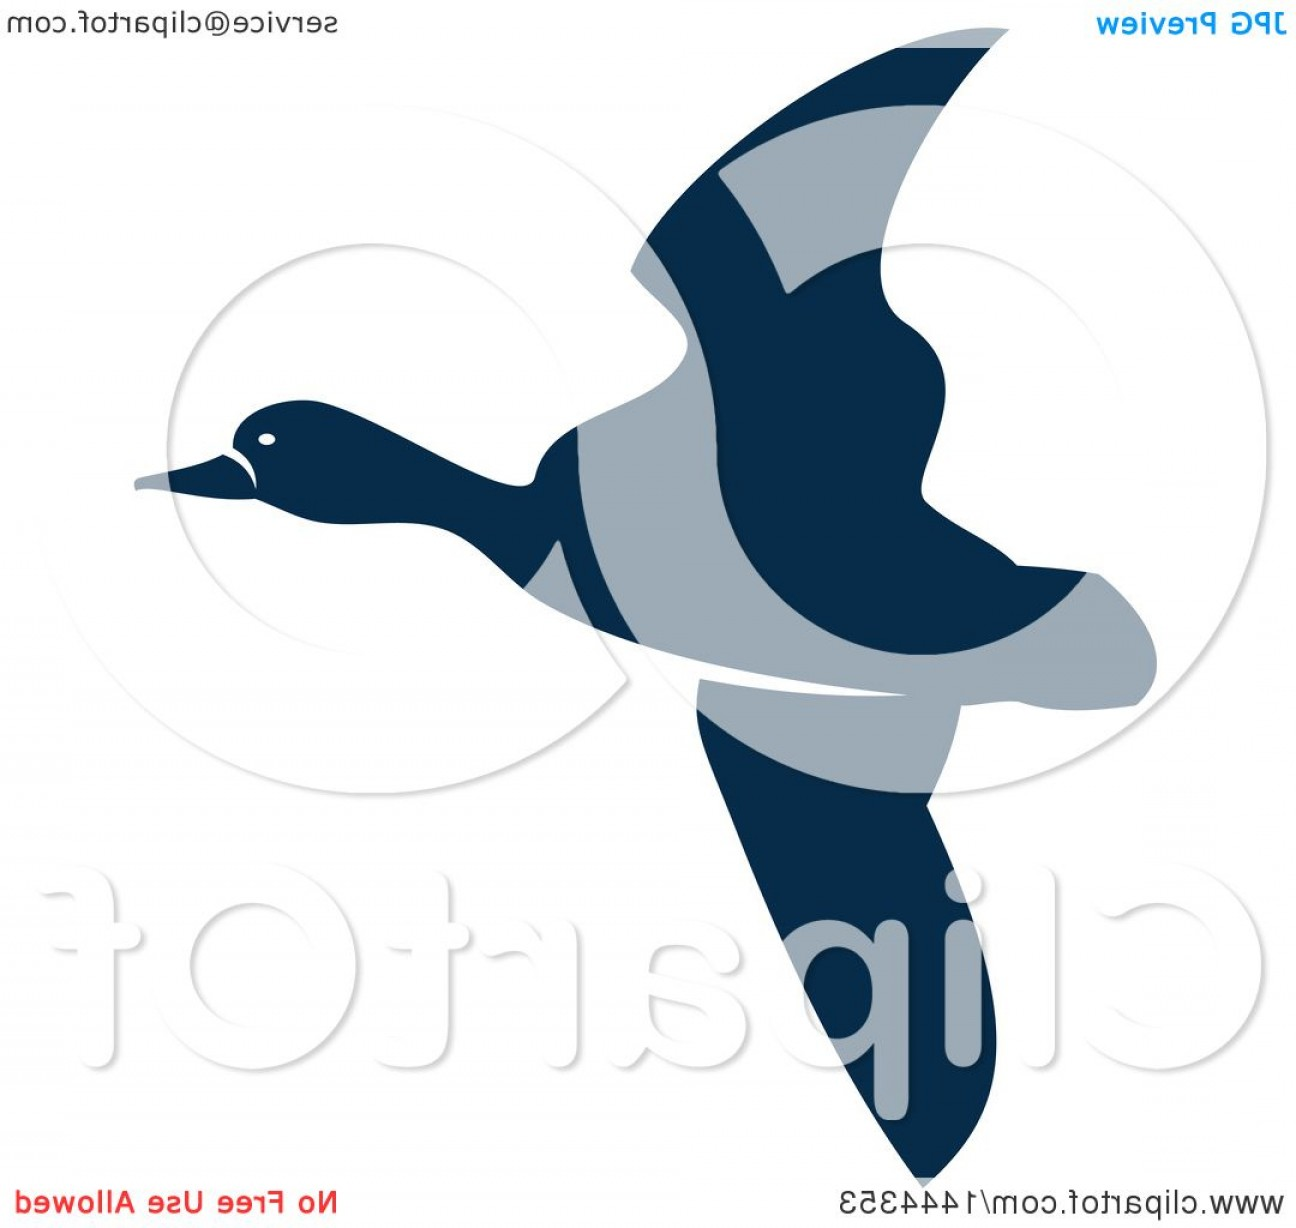 Geese Vector: Navy Blue Flying Duck Or Goose With A White Outline